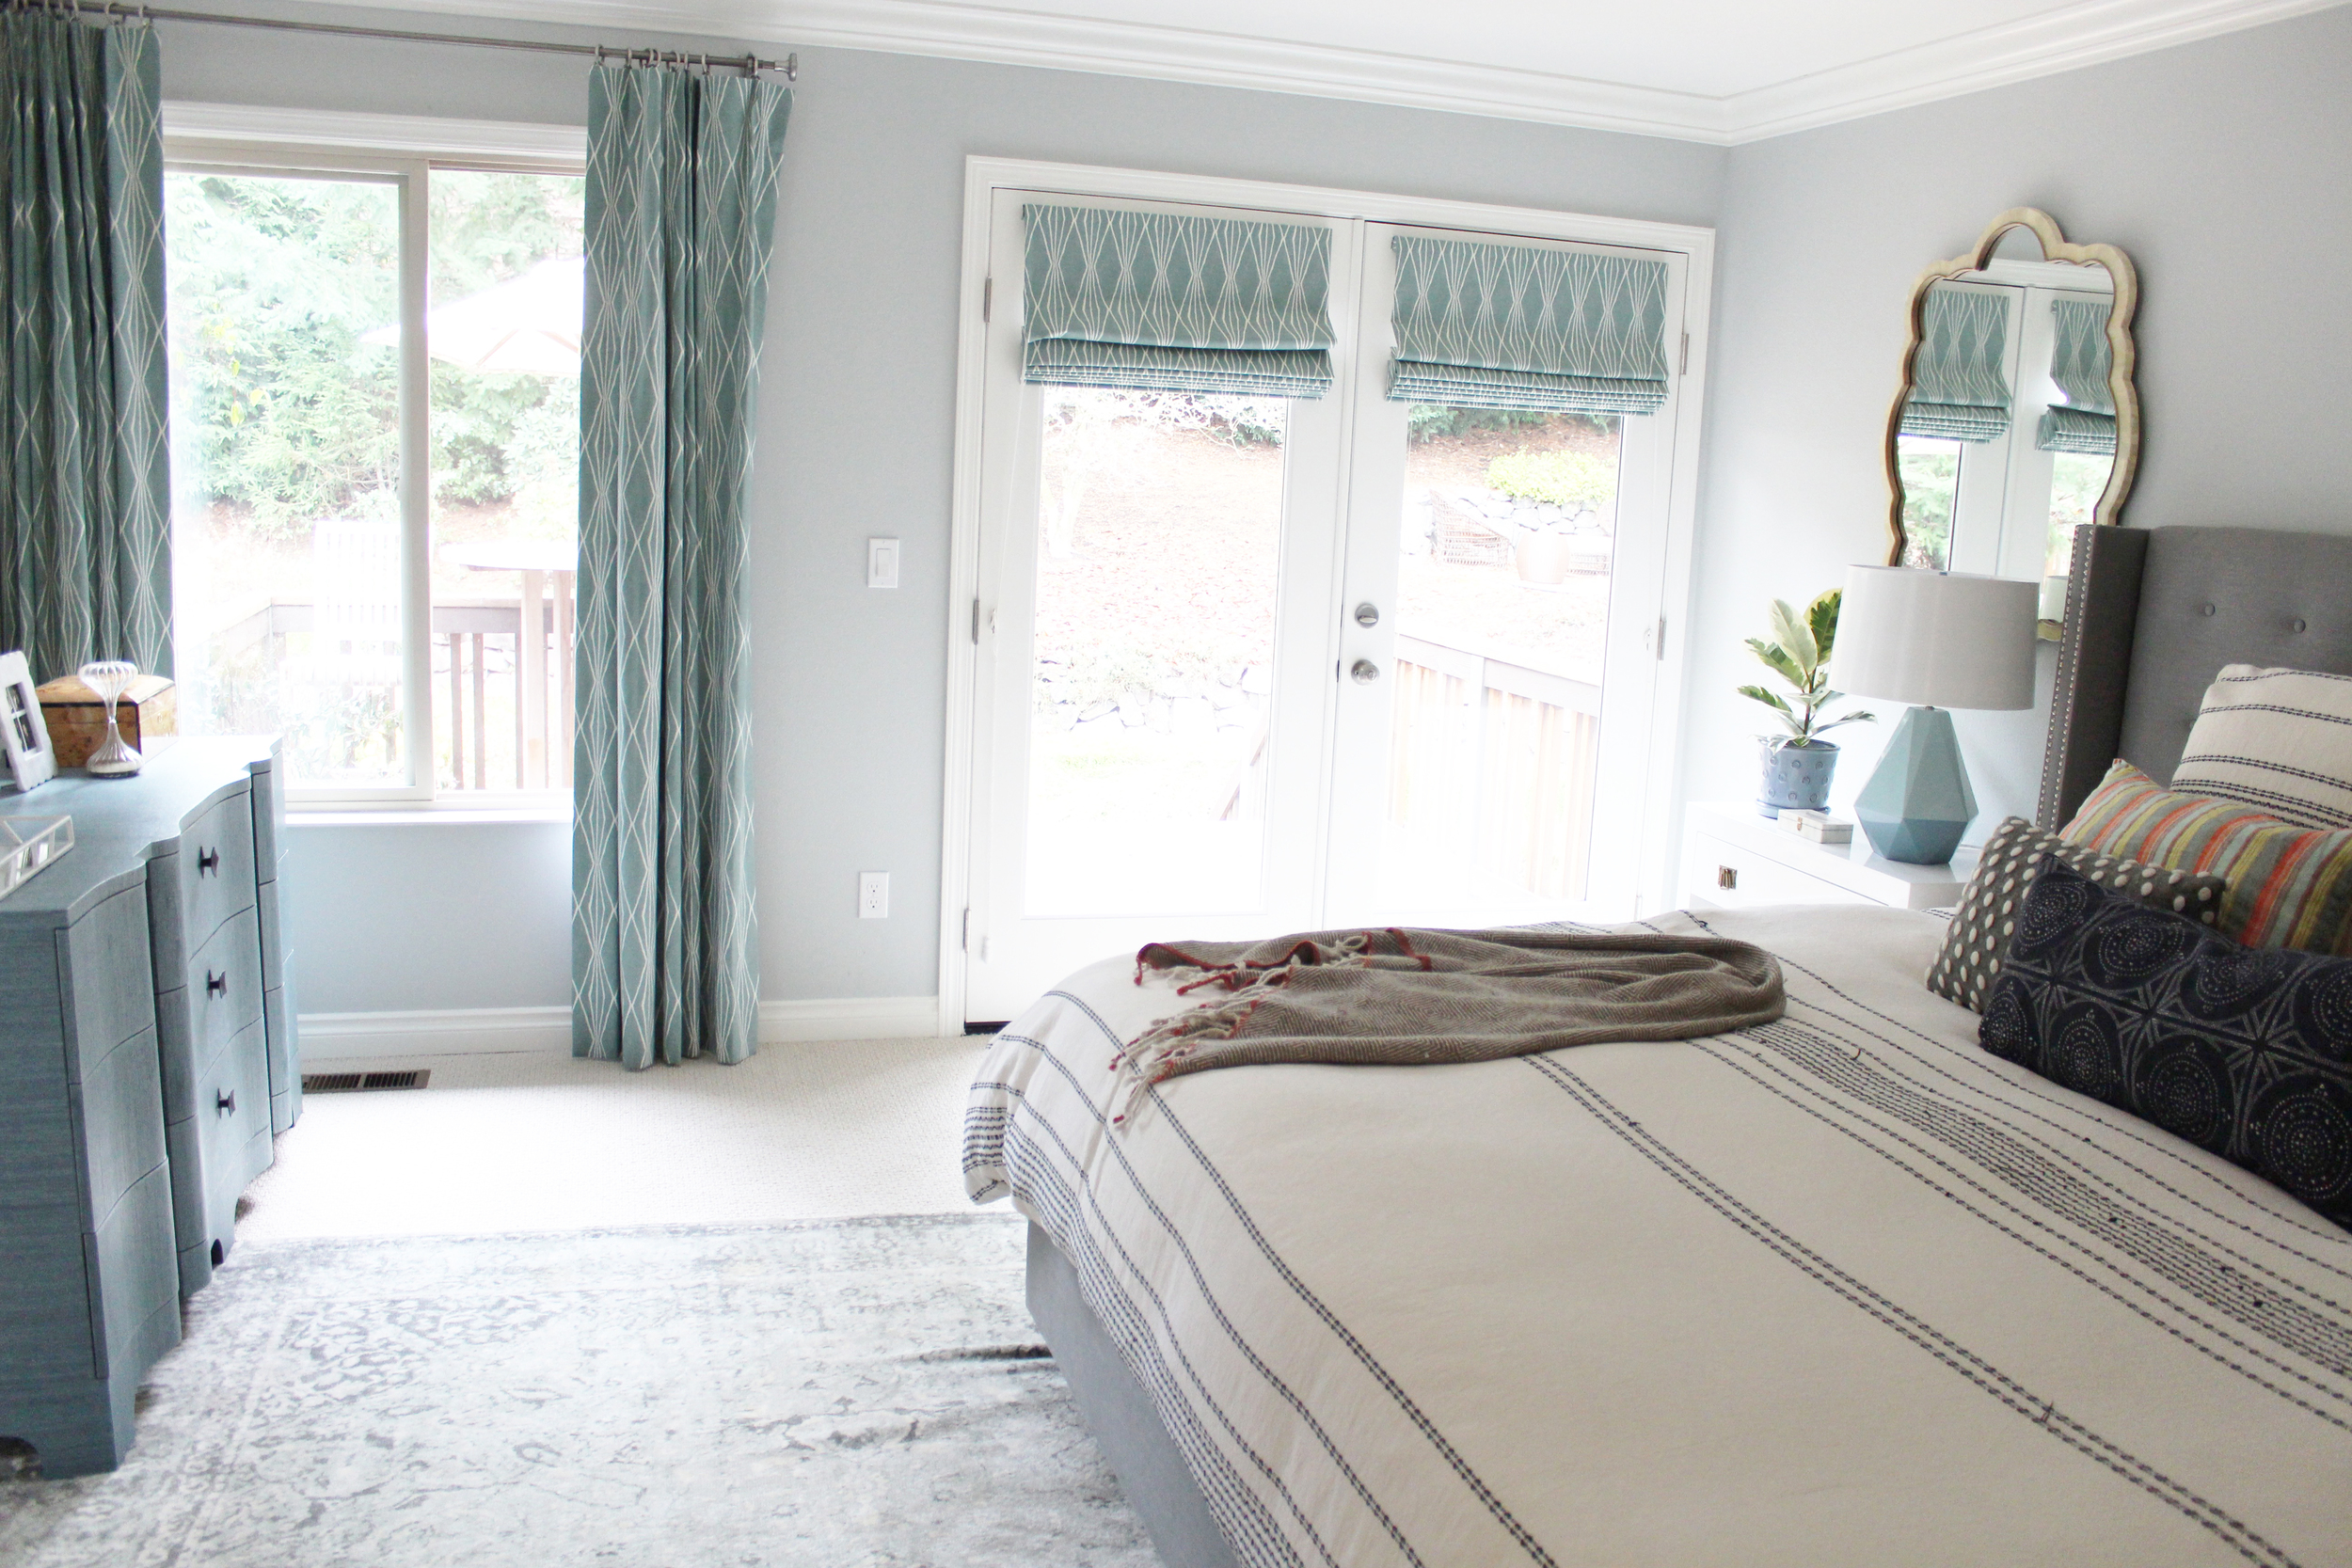 Tranquil master bedroom designed by Manderley Design Co.